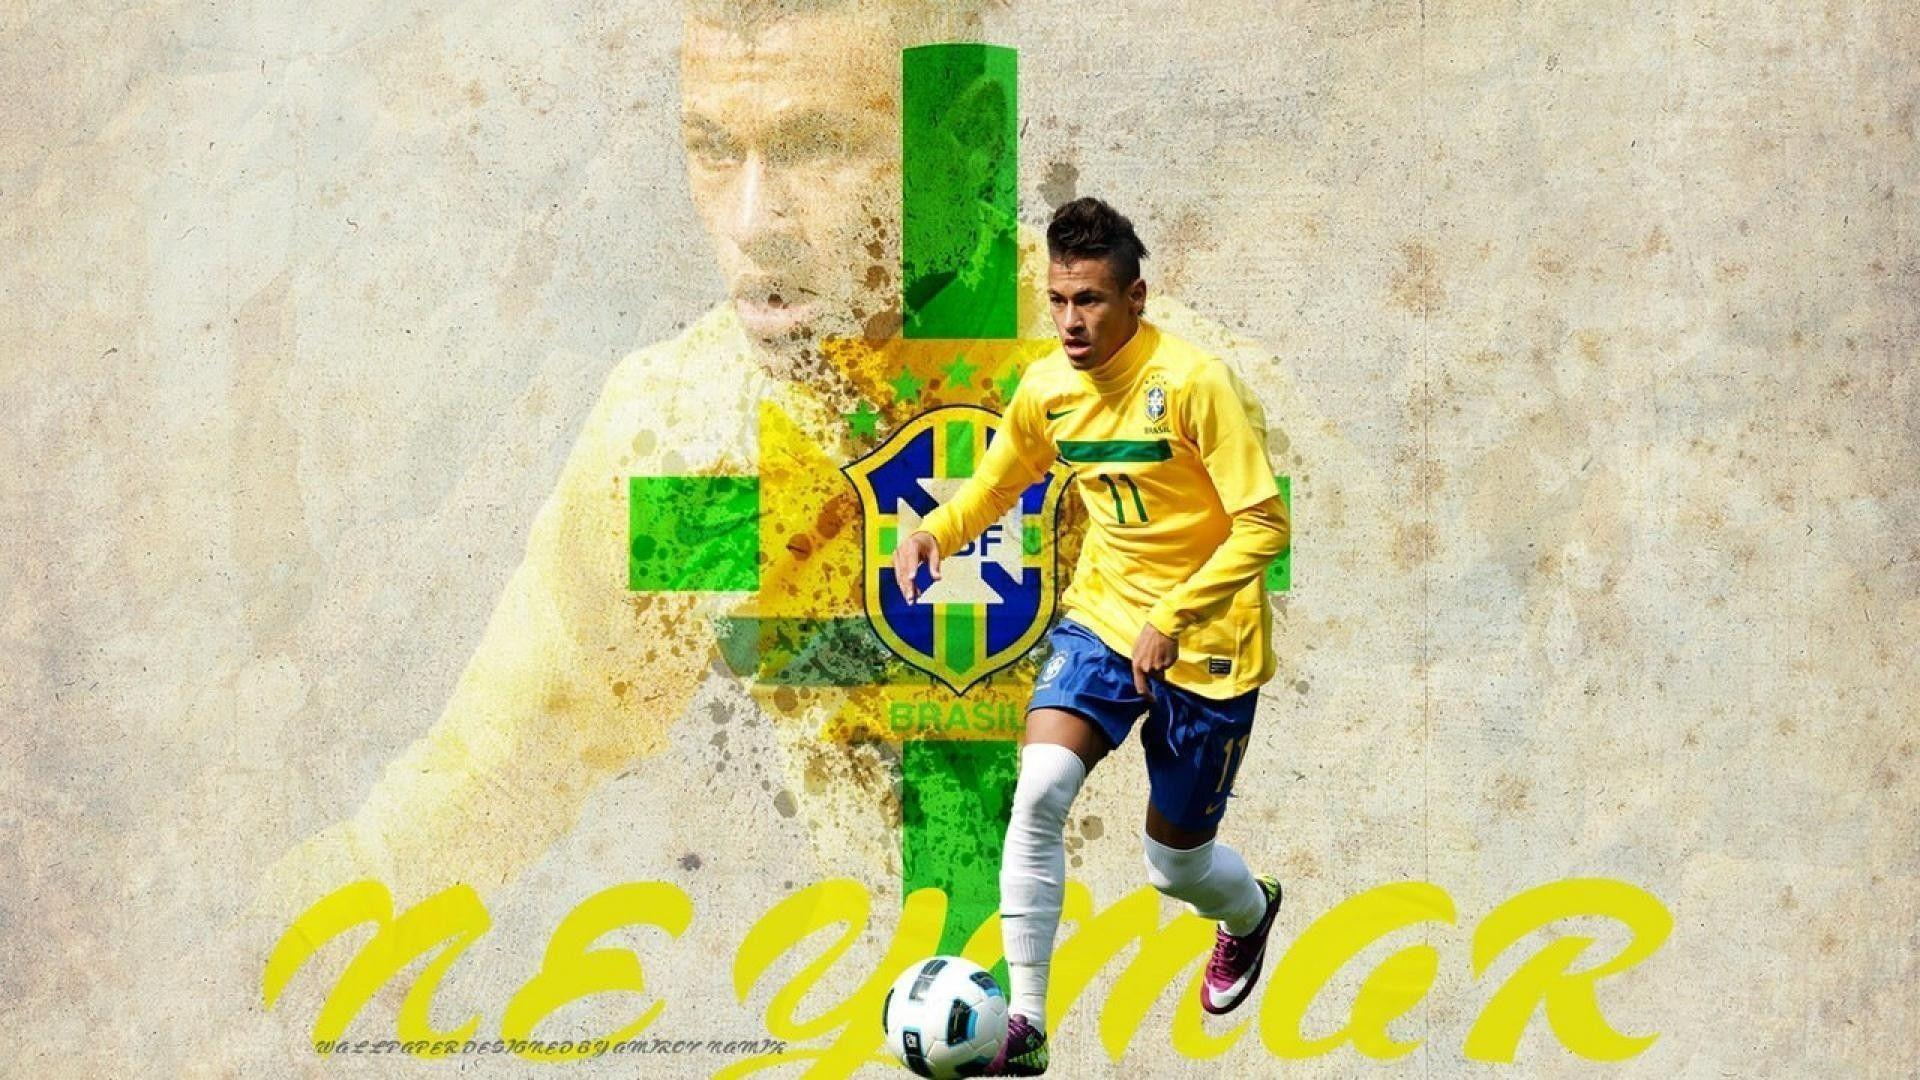 Neymar Brazil Wallpaper 2018 HD 74+ - Page 3 of 3 - xshyfc.com